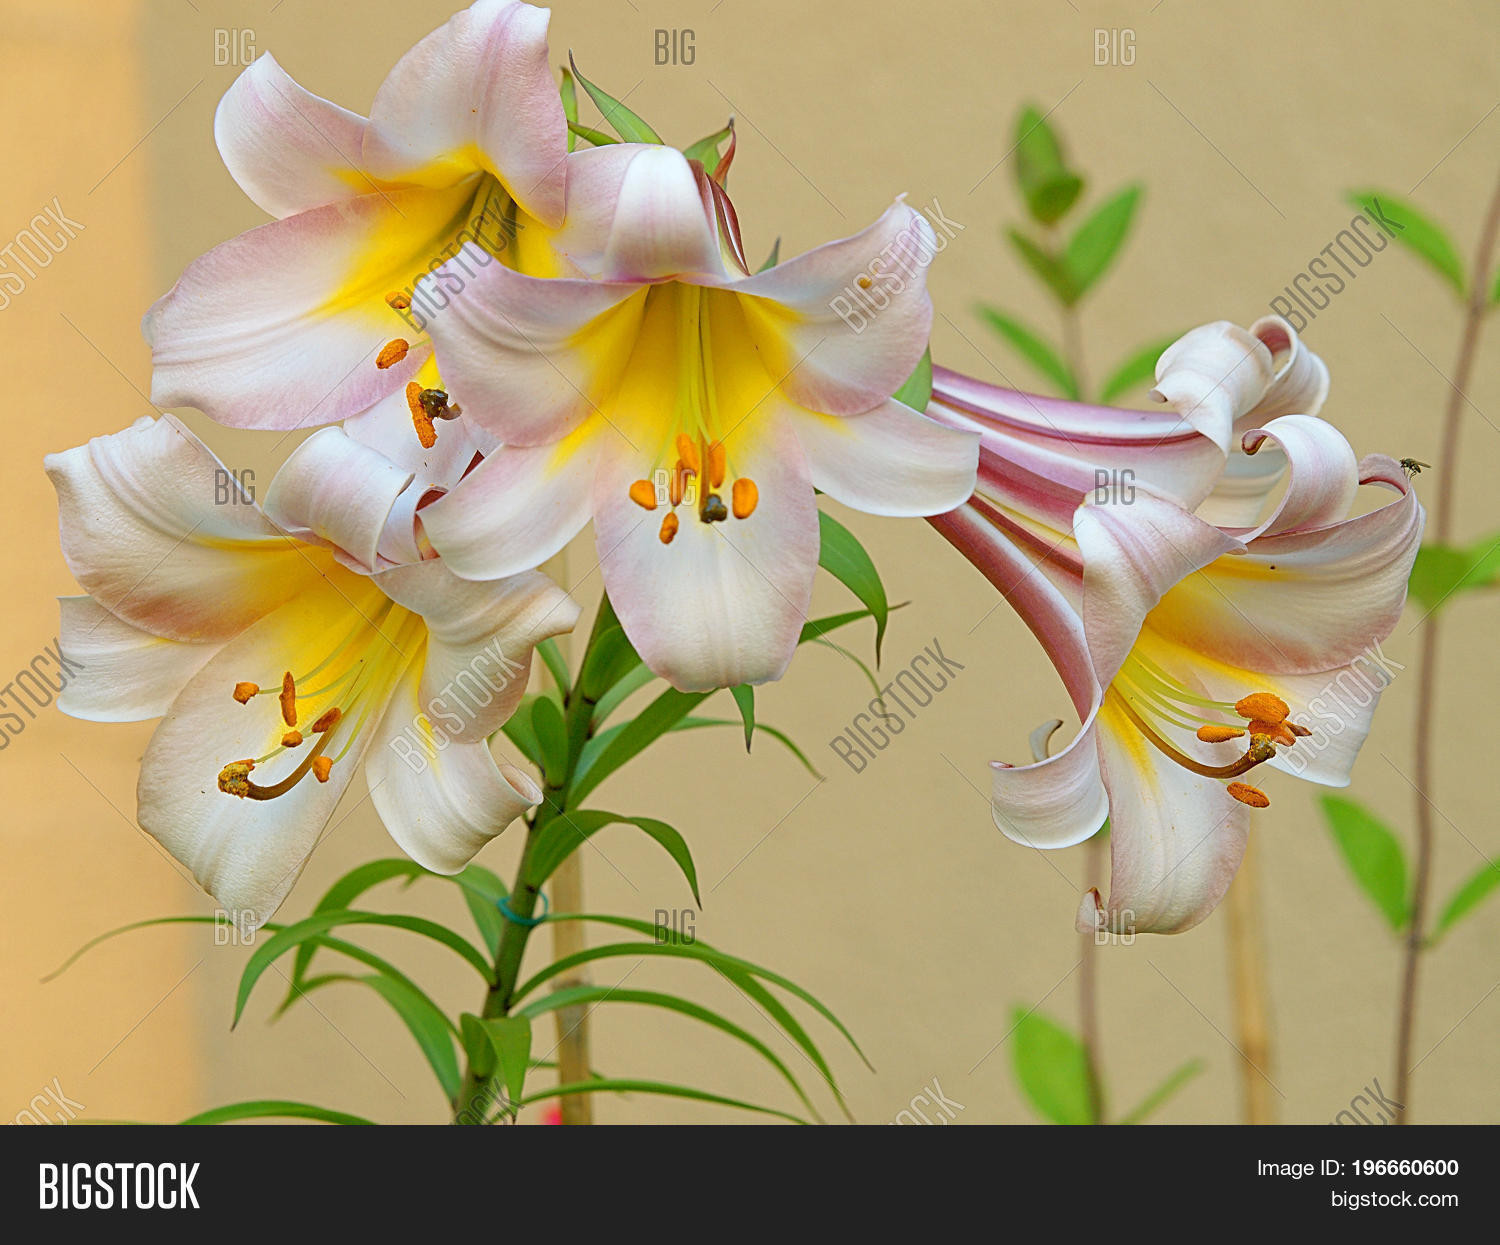 Lily flowers lodz image photo free trial bigstock lily flowers lodz poland july 24 2017 white and yellow lilies blooming izmirmasajfo